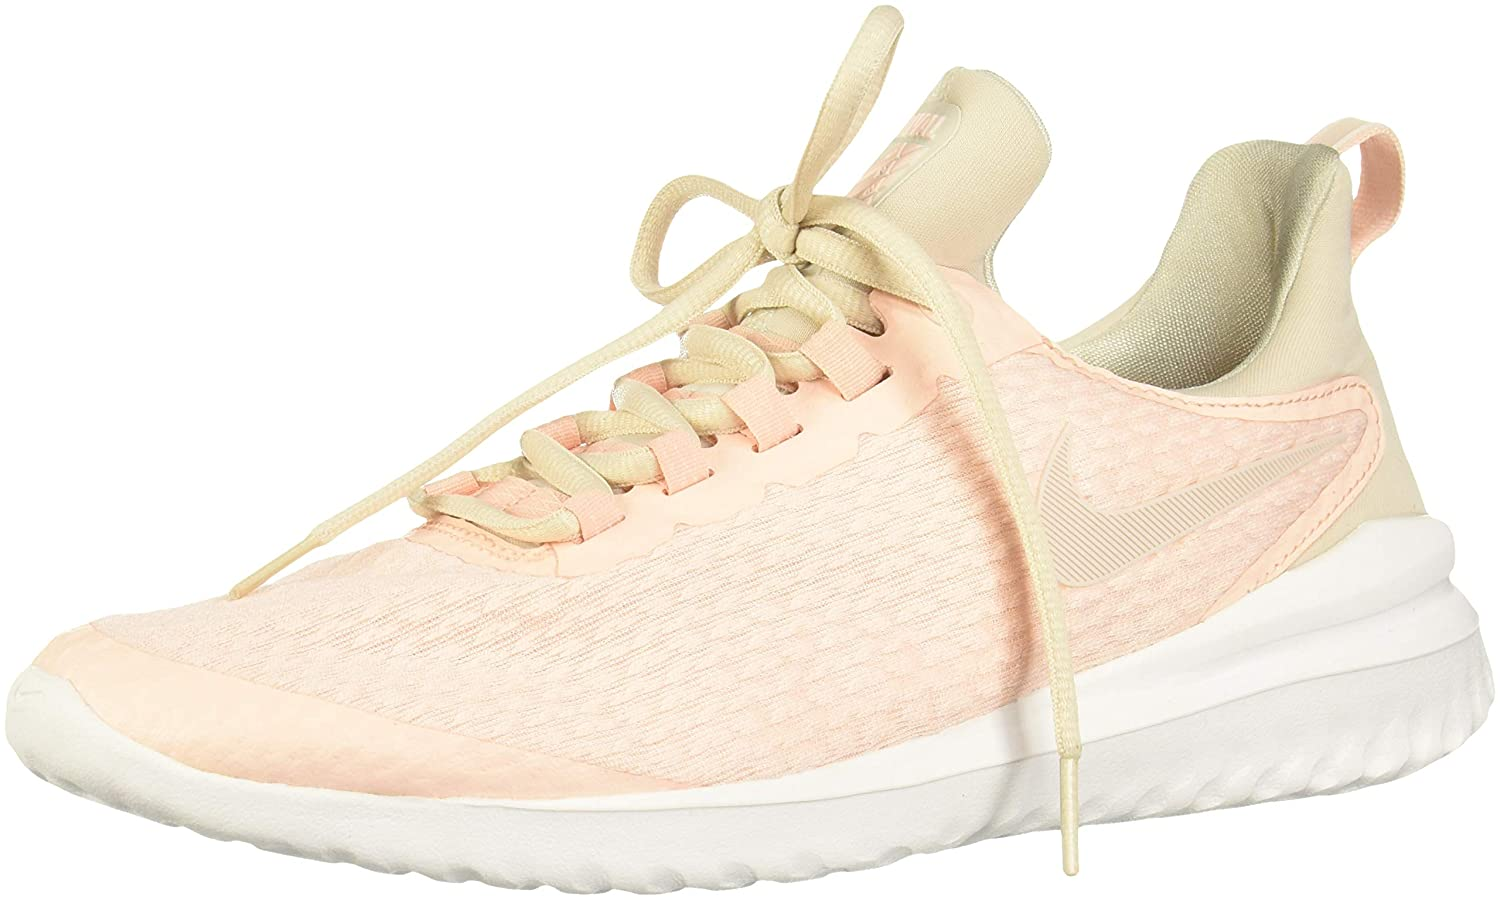 MultiCouleure (Washed Coral Lt Orewood Brn Summit blanc 601) Nike W Renew Rival, Chaussures de Running Compétition Femme 40.5 EU